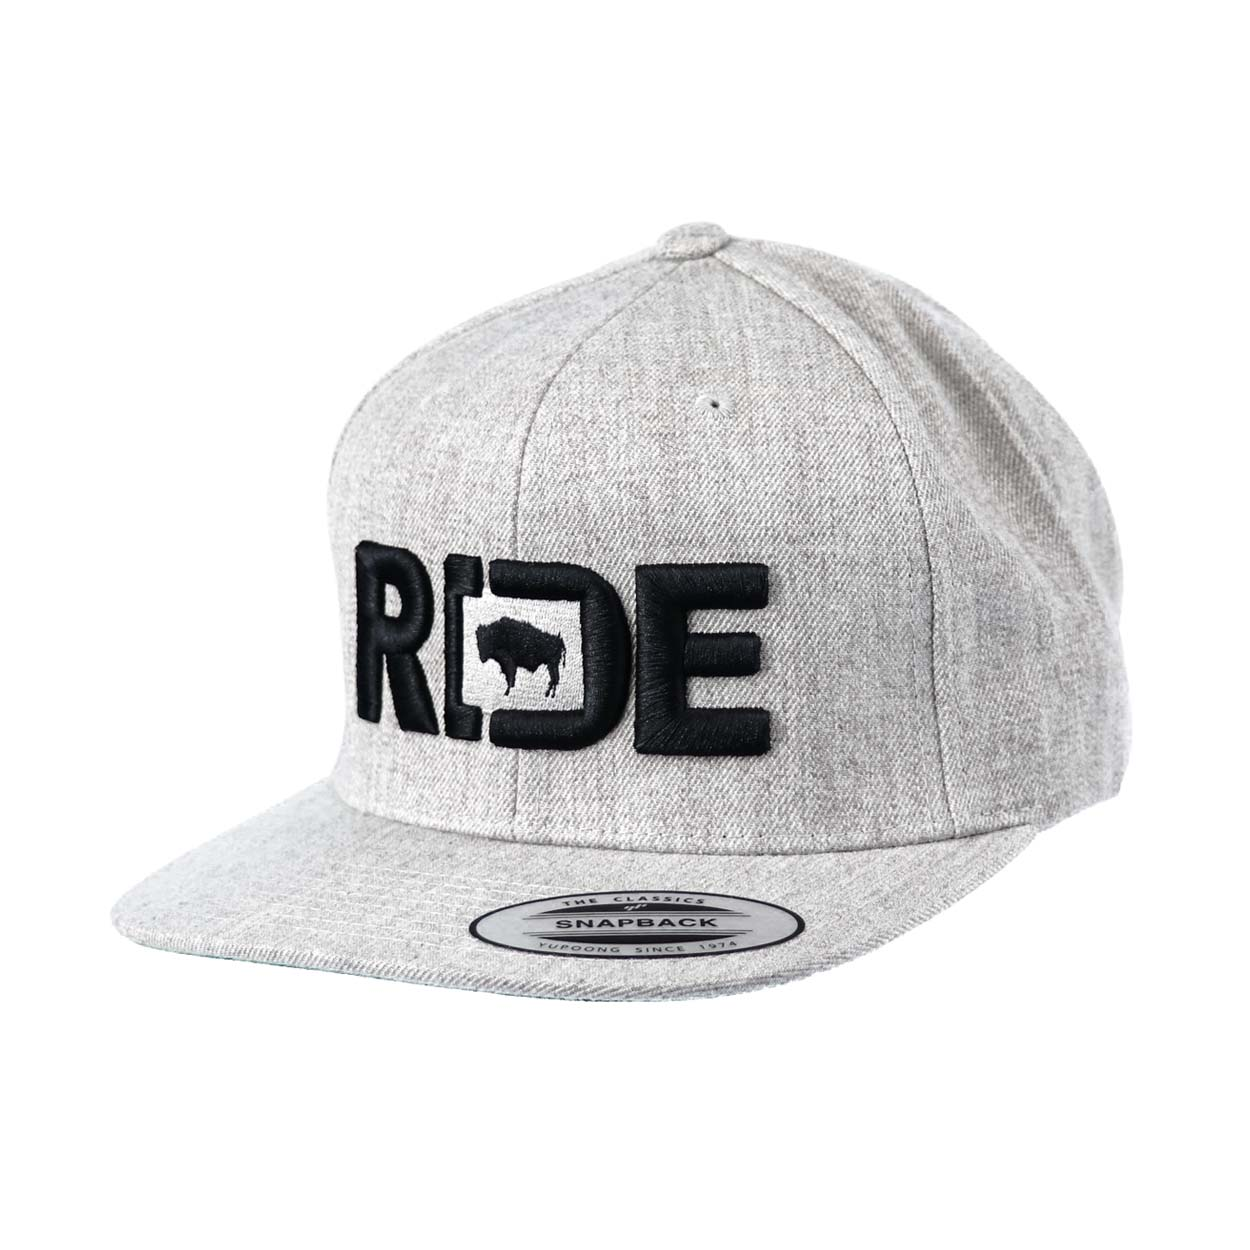 Ride Wyoming Classic Embroidered  Snapback Flat Brim Hat Gray/Black